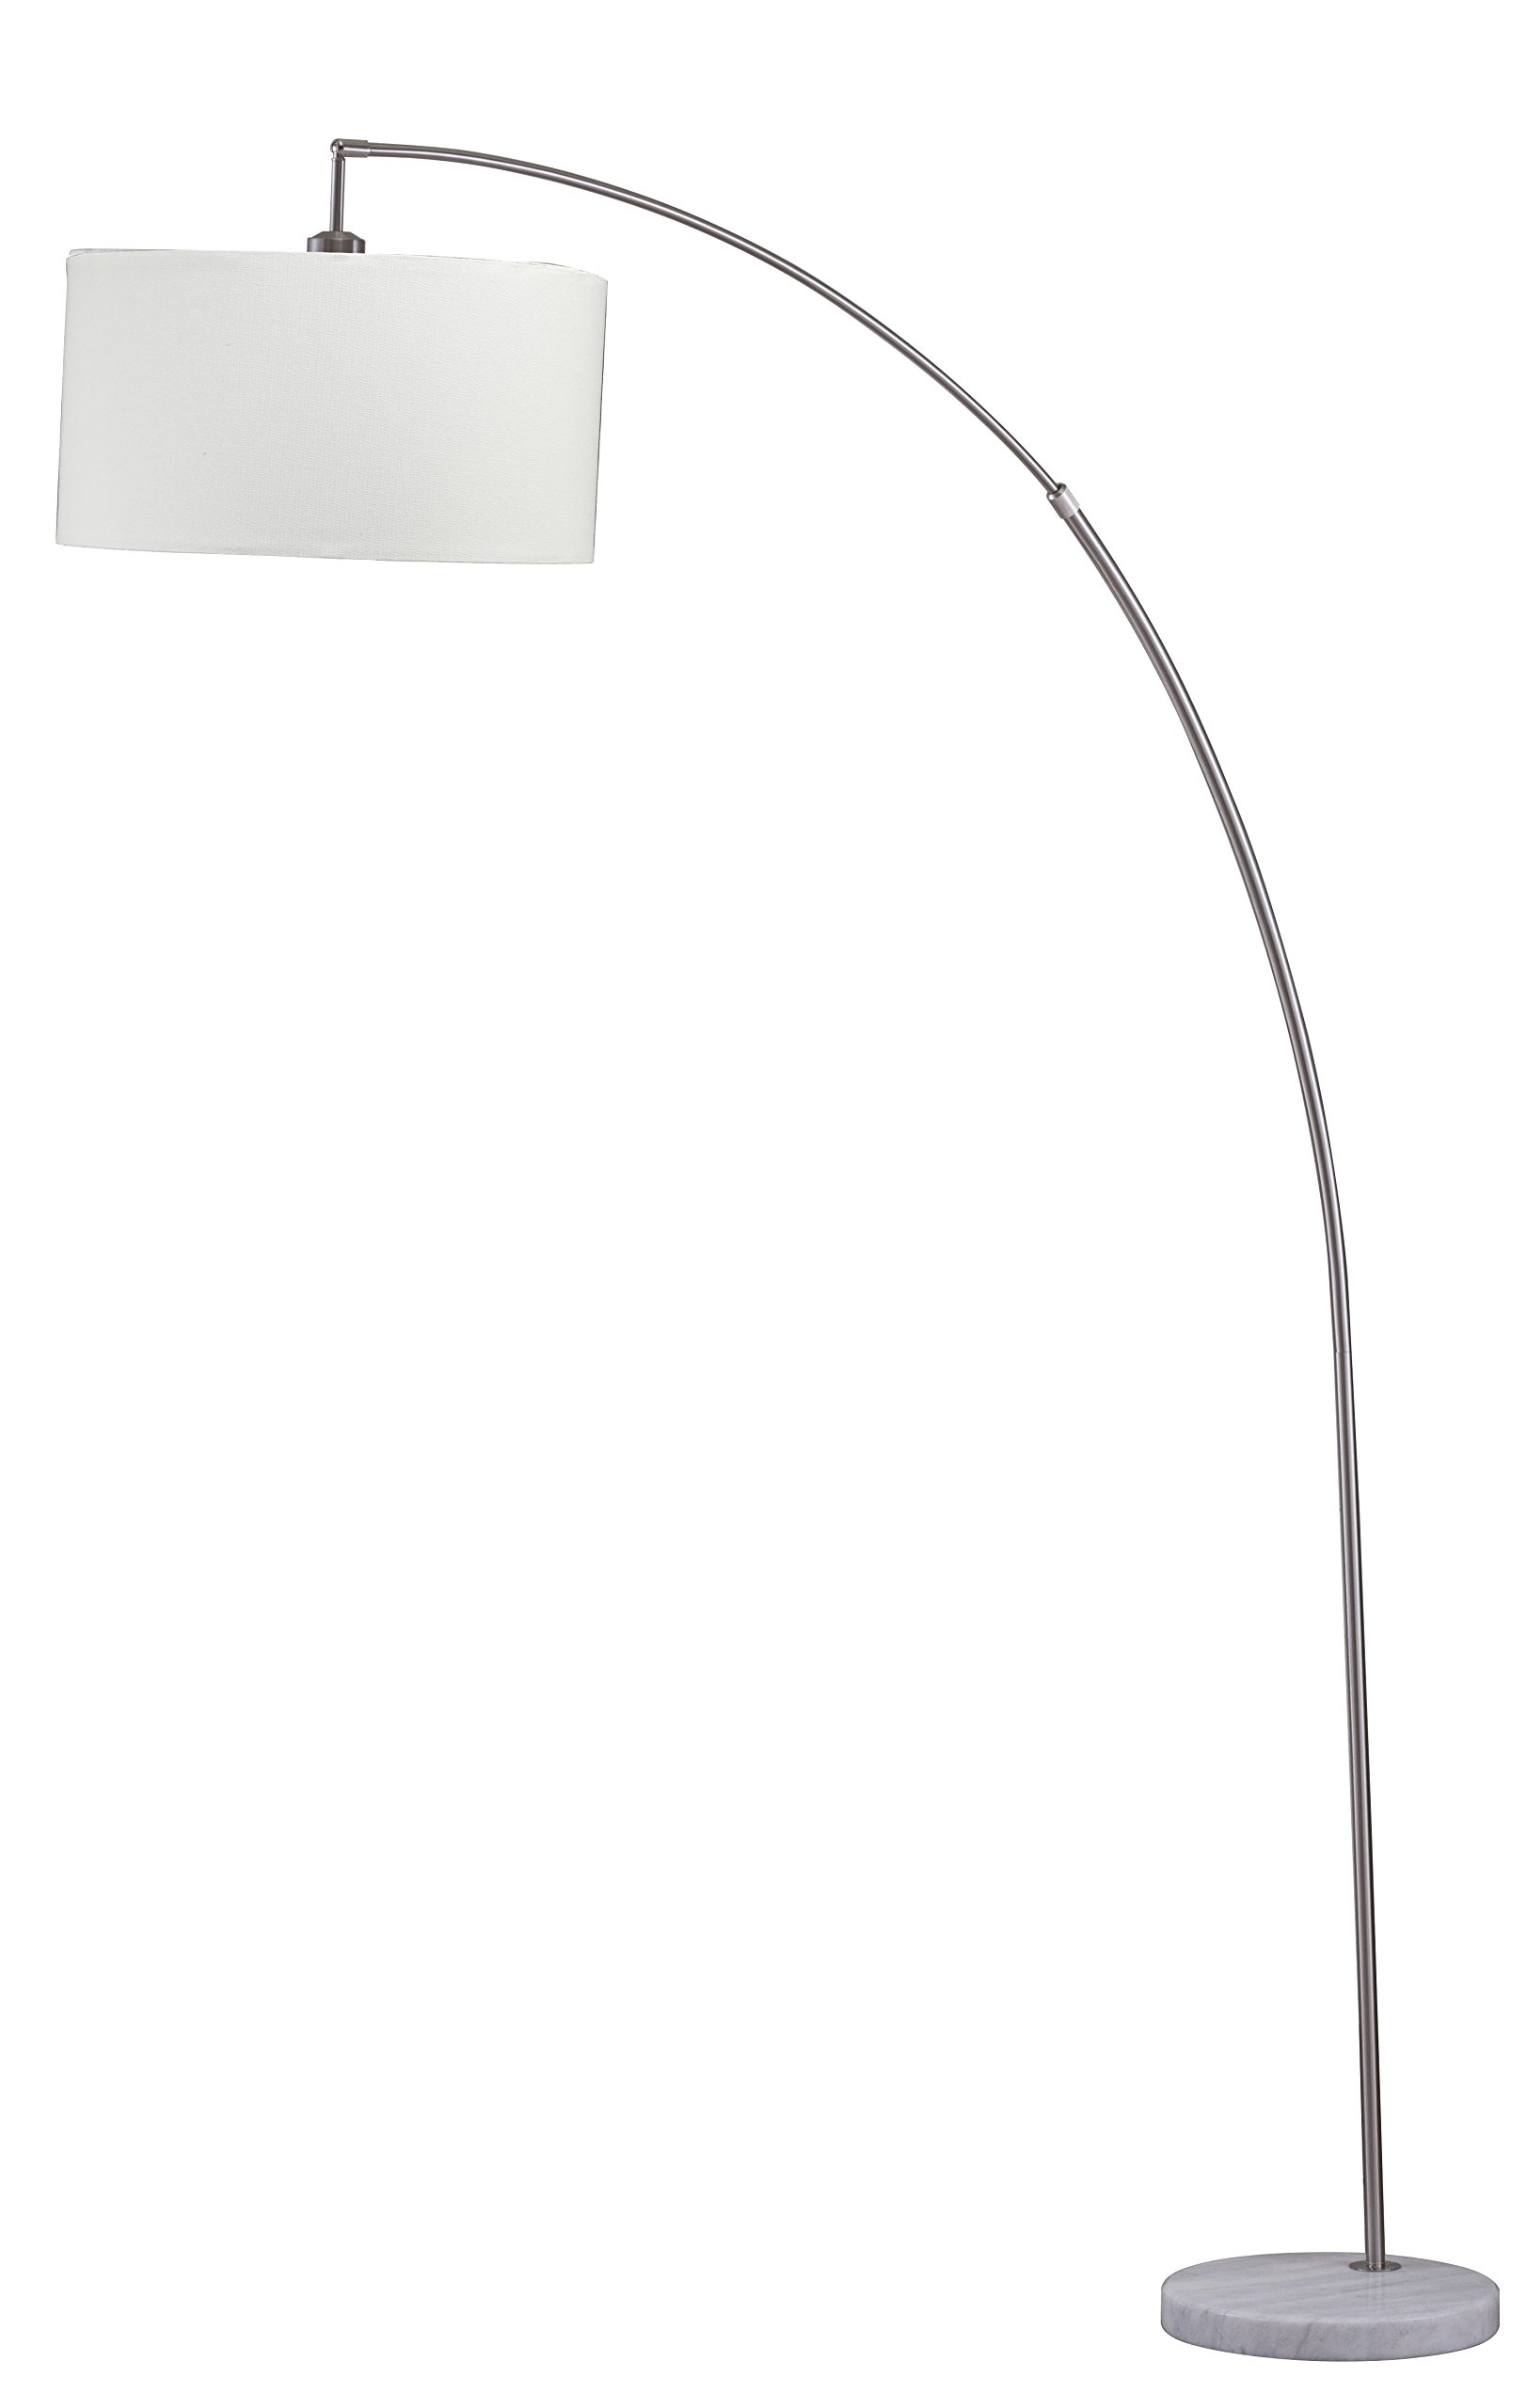 Major-Q 6931SN-LED 81'' H Steel Adjustable Arching Floor Lamp, by Major-Q (Image #2)